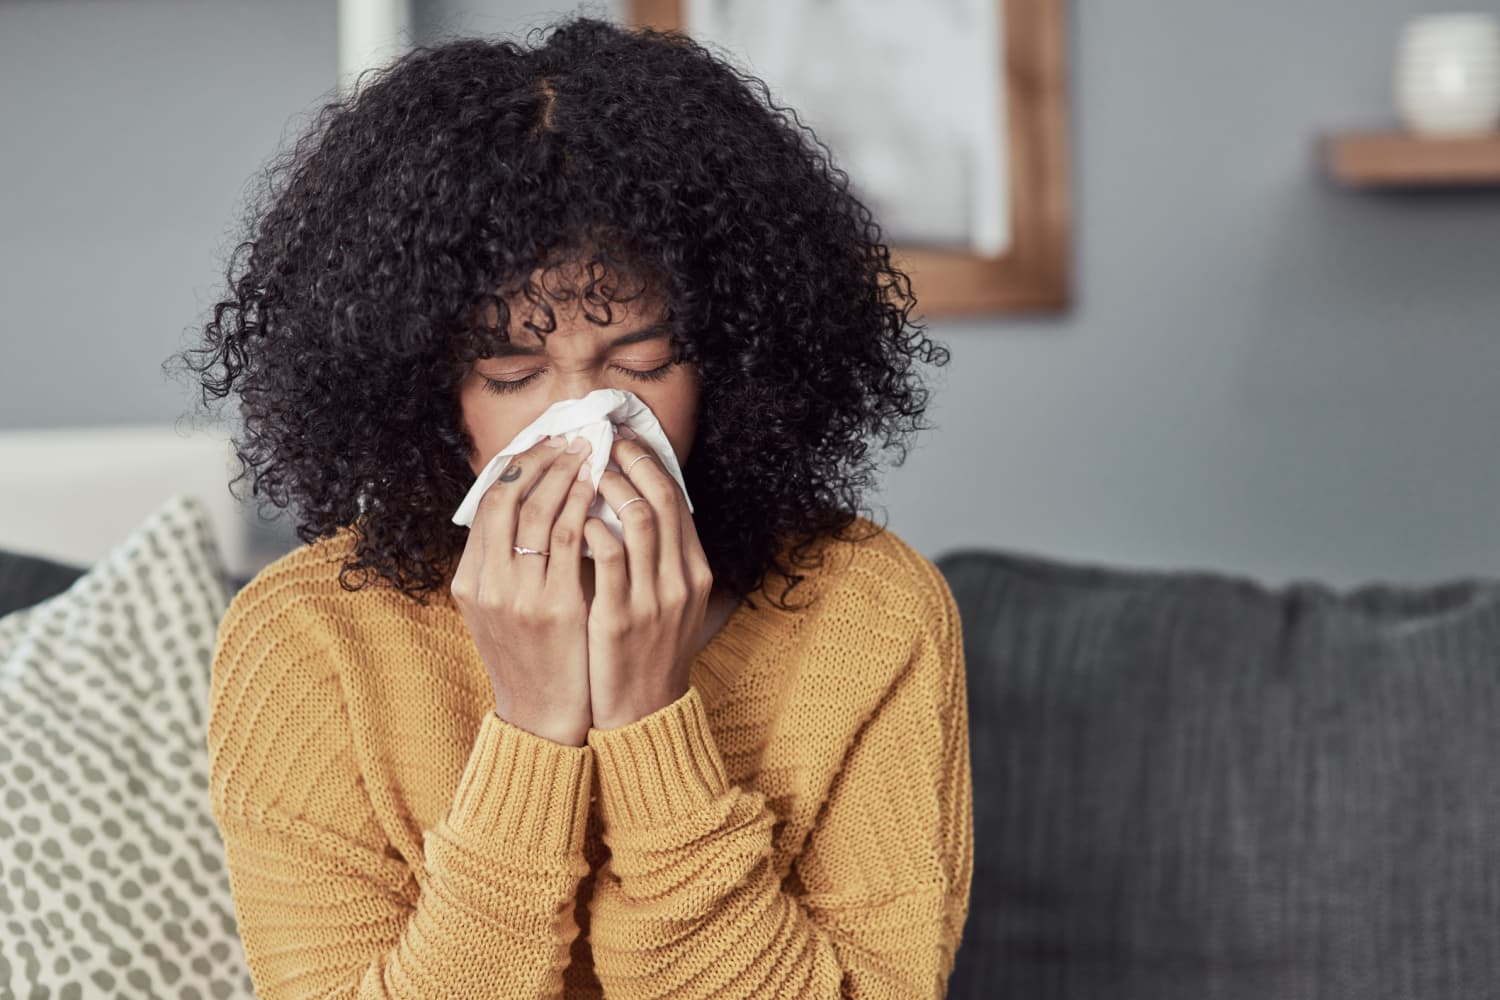 9 Easy Home Tips and Hacks for People Who Can't Stop Sneezing Inside